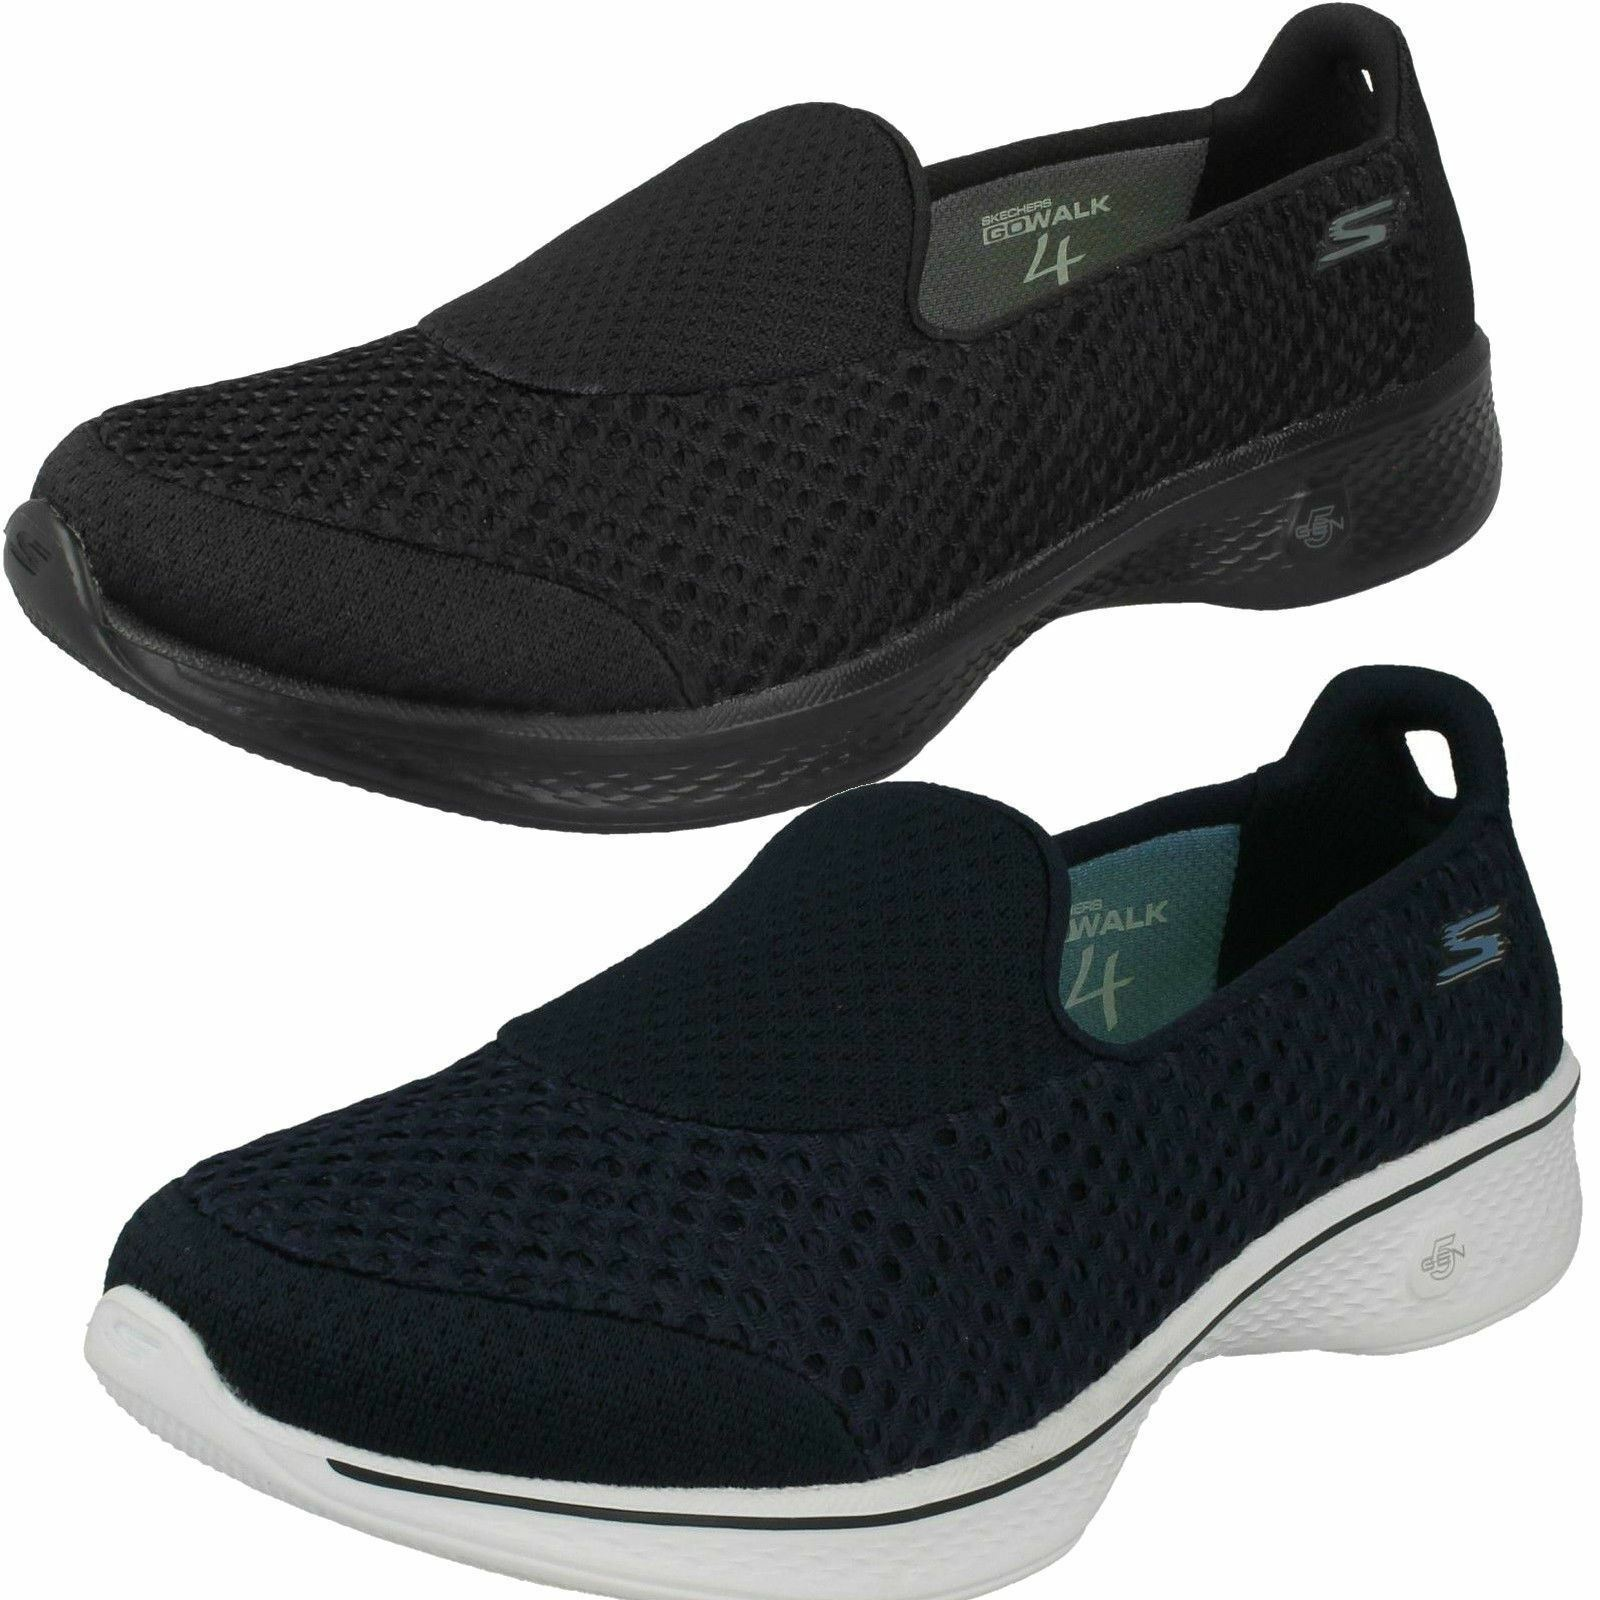 Skechers Go Walk 4 Kindle Femmes À Enfiler Confort Sports Baskets Chaussures 14145